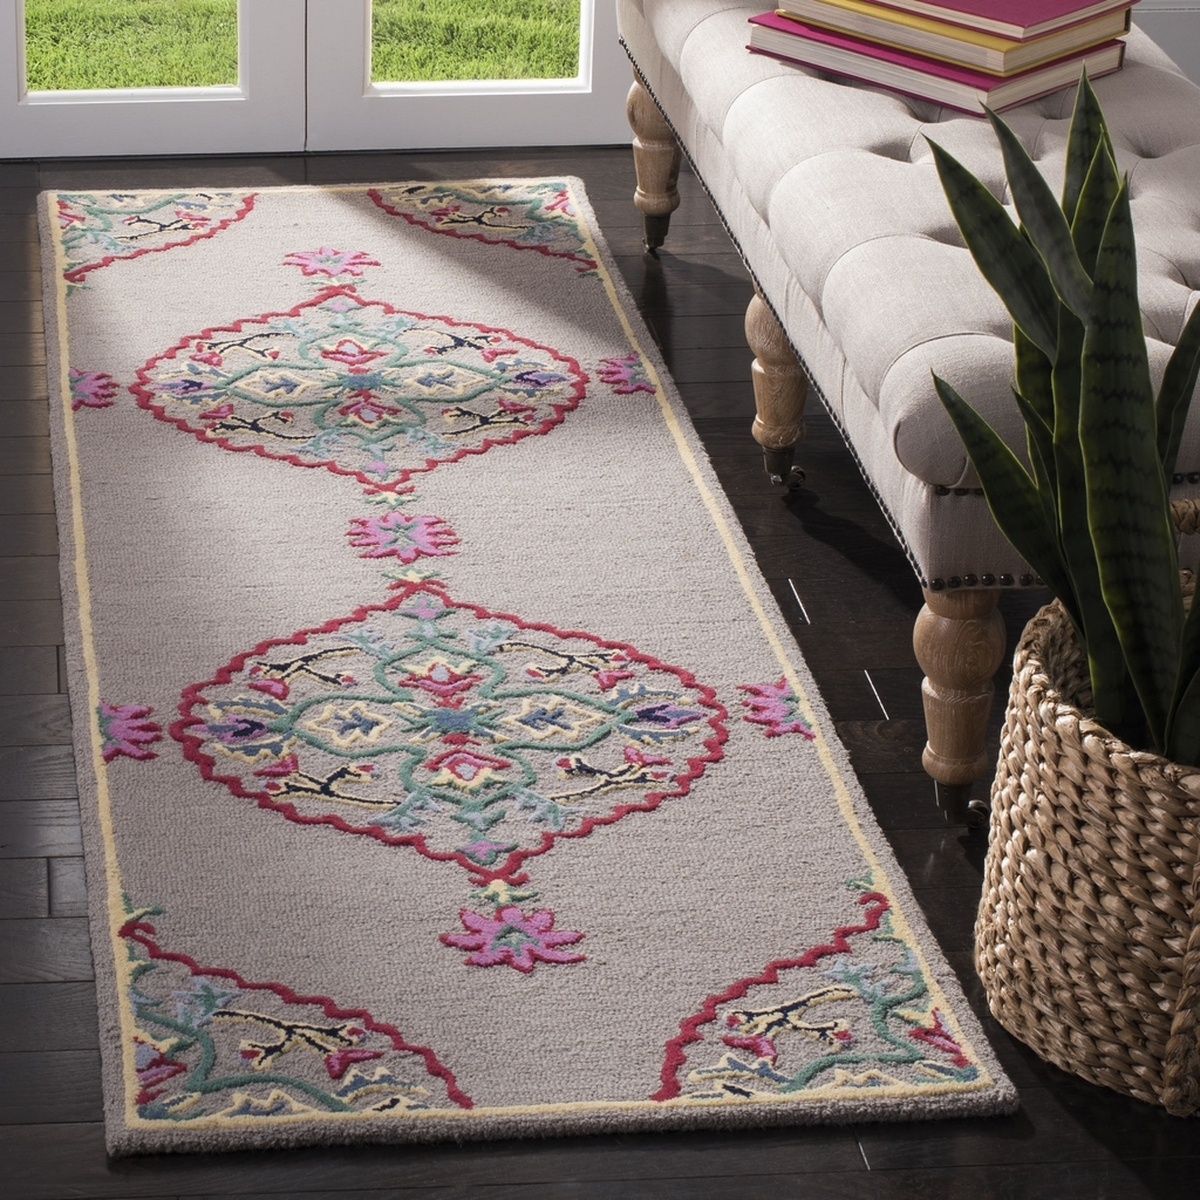 Rug Blg605d Bellagio Area Rugs By Safavieh